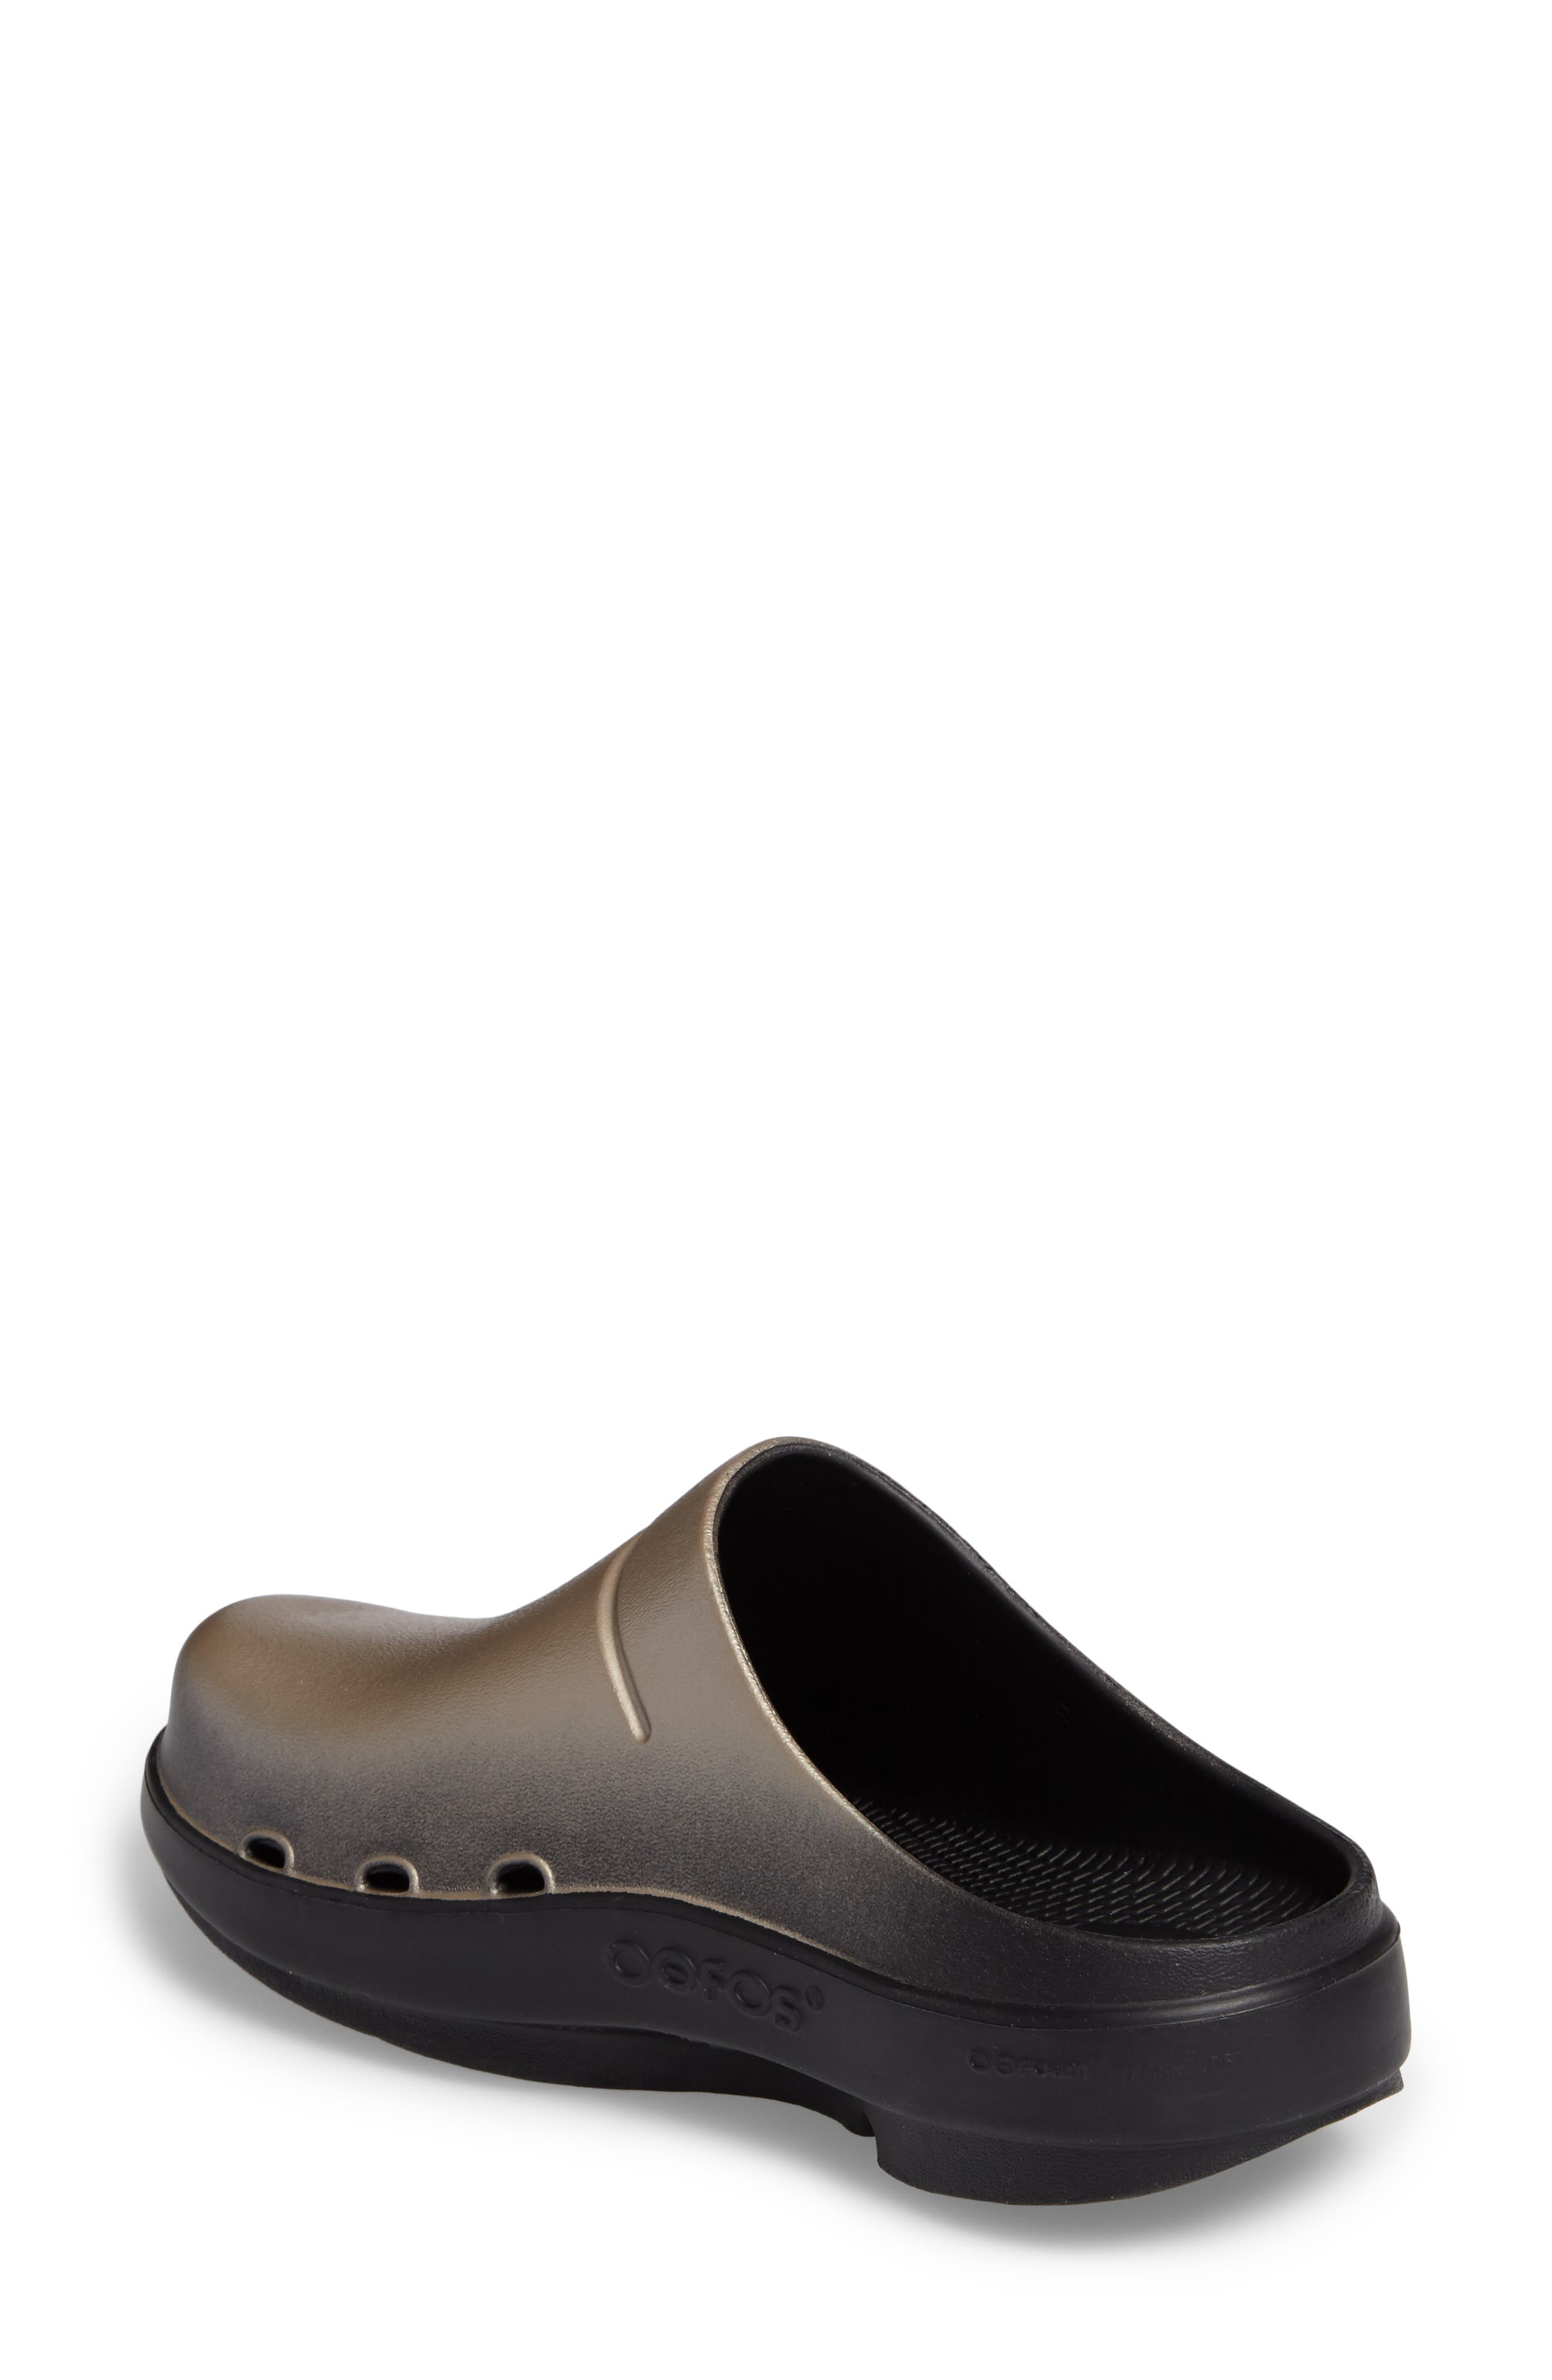 OOcloog Luxe Clog,                             Alternate thumbnail 2, color,                             Latte